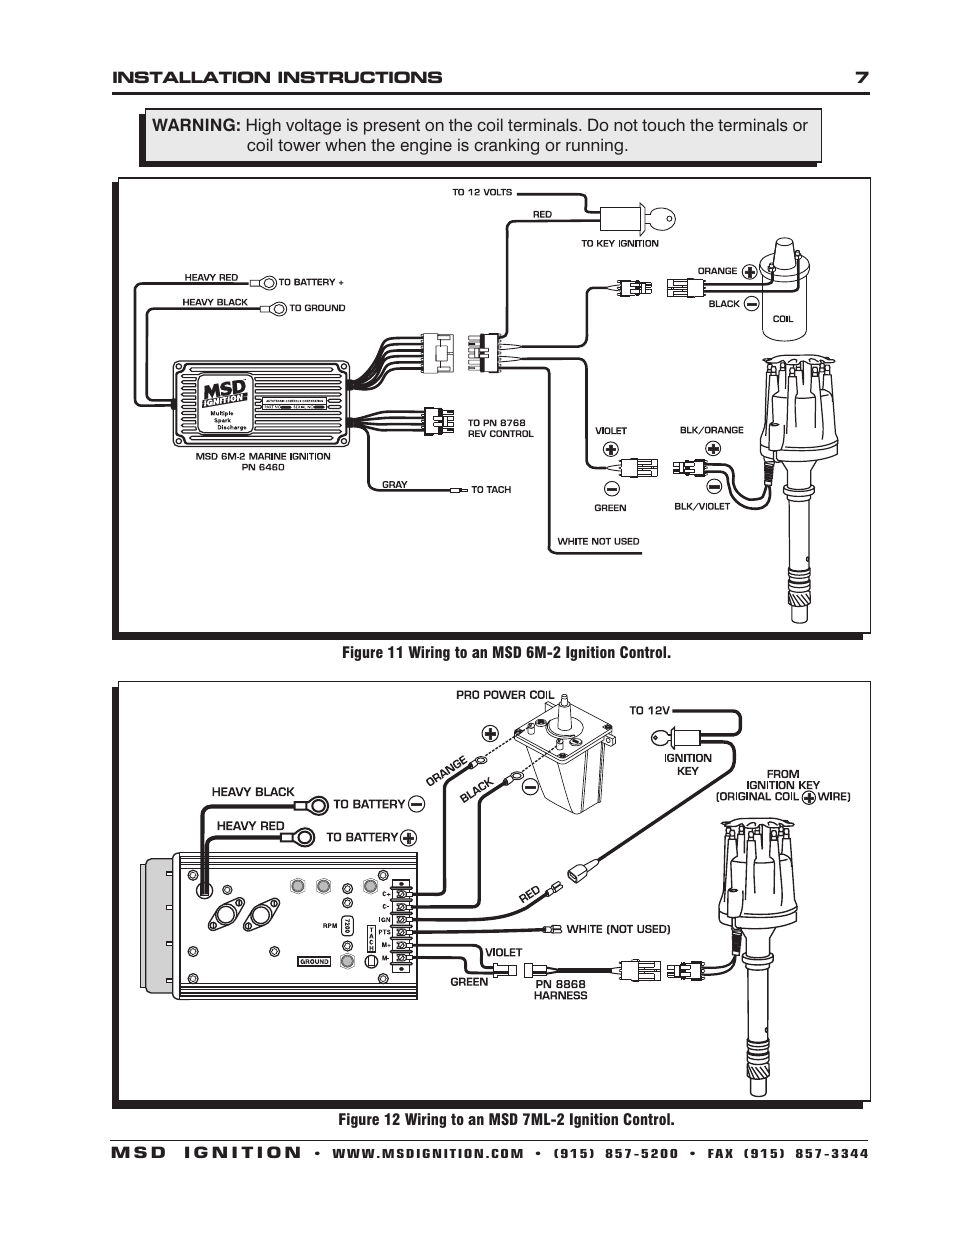 Msd 7 Wiring Diagram Manual Of 7531 Digital 6m 2 Auto Meter Plus